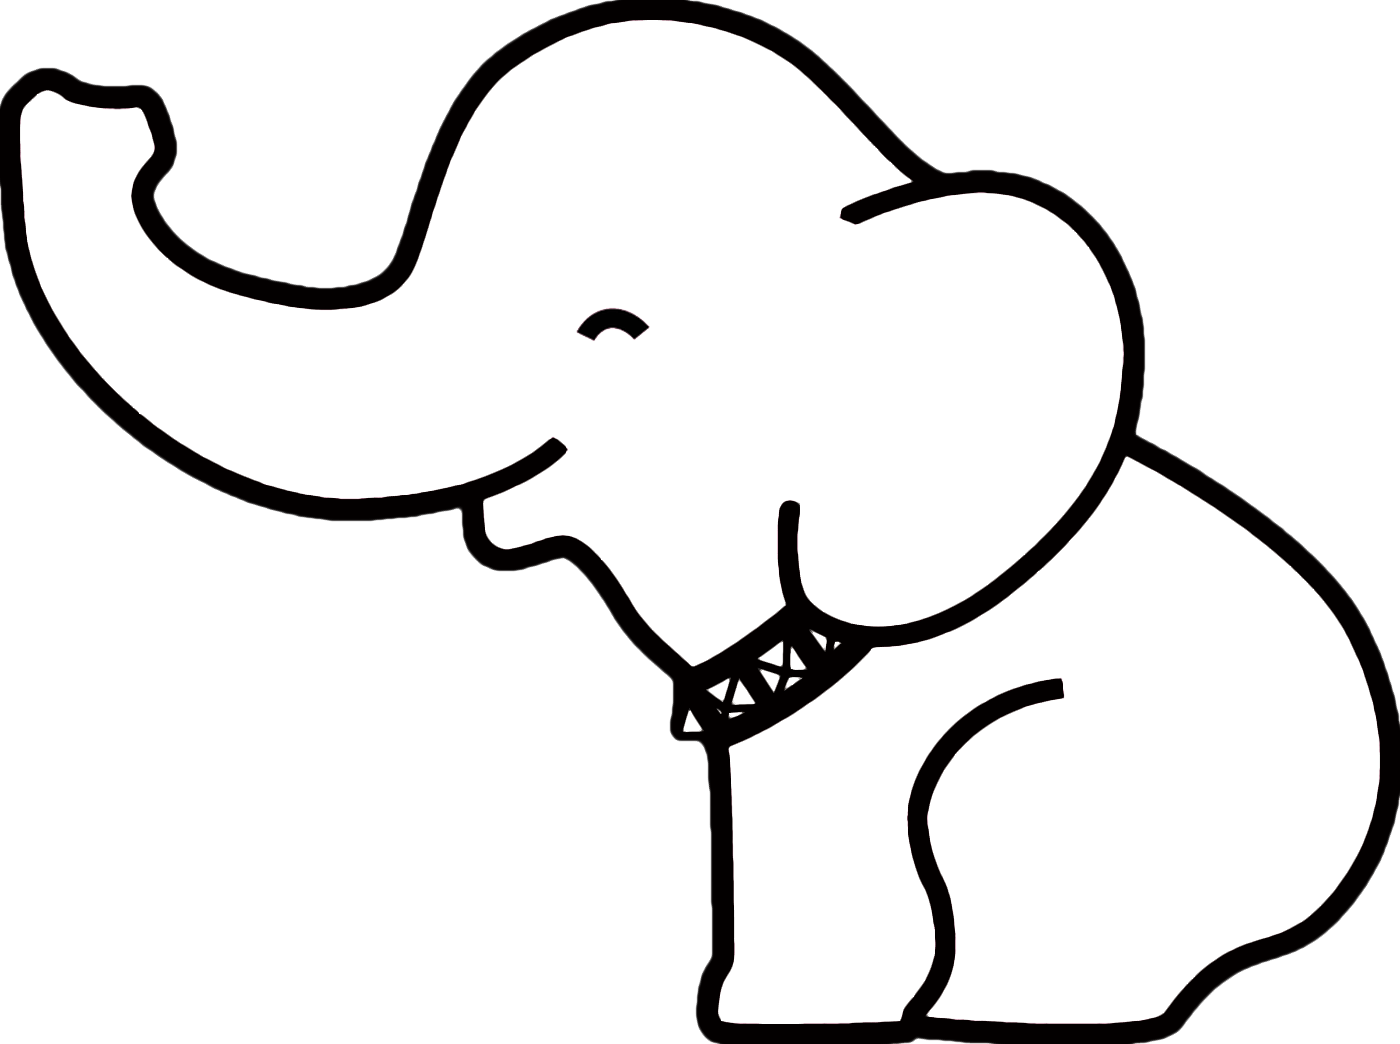 Paw clipart elephant On ideas elephant Outline drawing